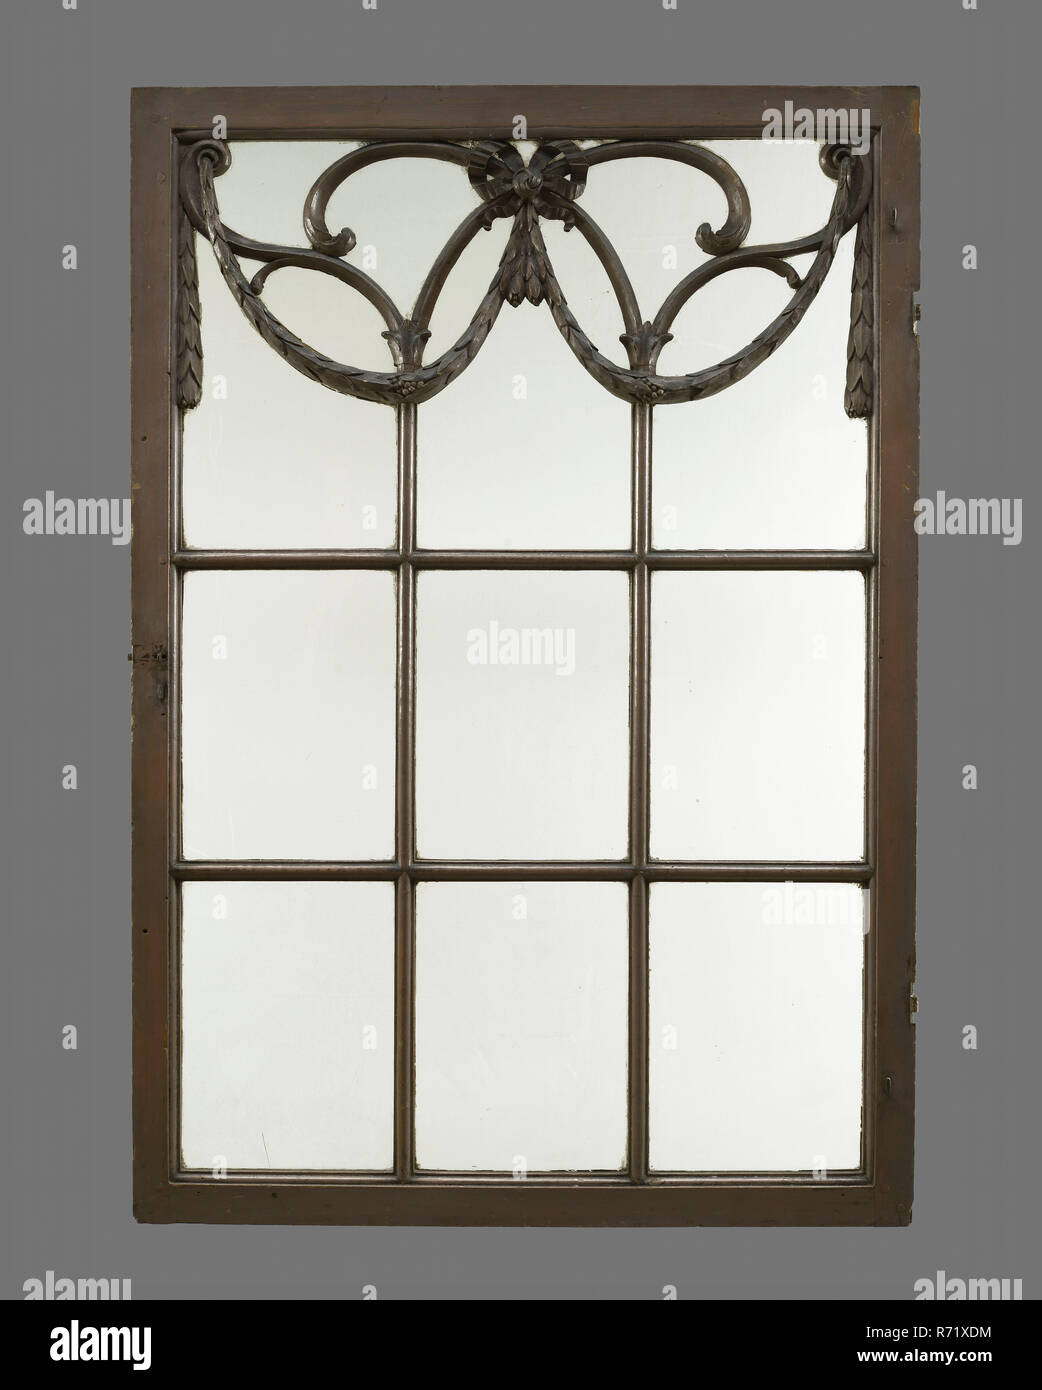 Painted and carved wooden window with nine windows, the top three framed with garlands, window window wood paint, d 3.0 - Stock Image